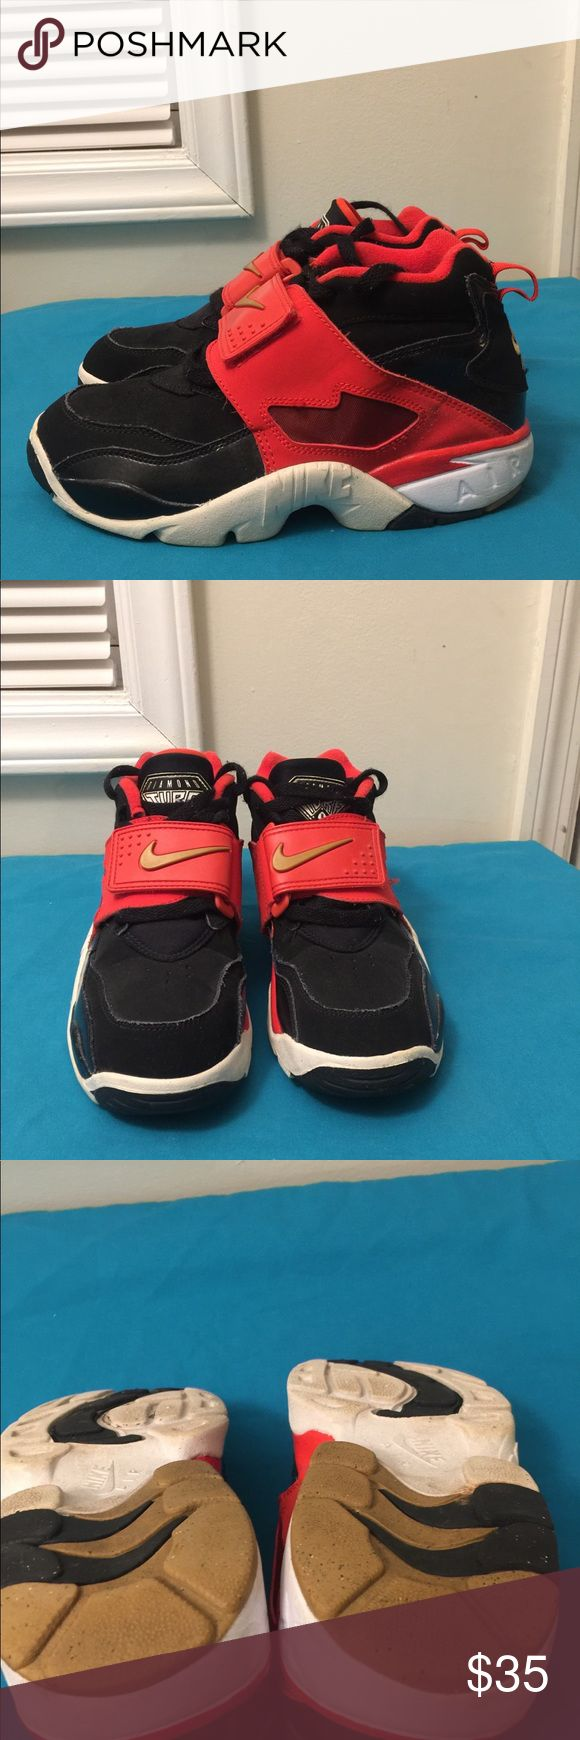 Nike turf Nike turf used but good condition new insoles Nike Shoes Sneakers